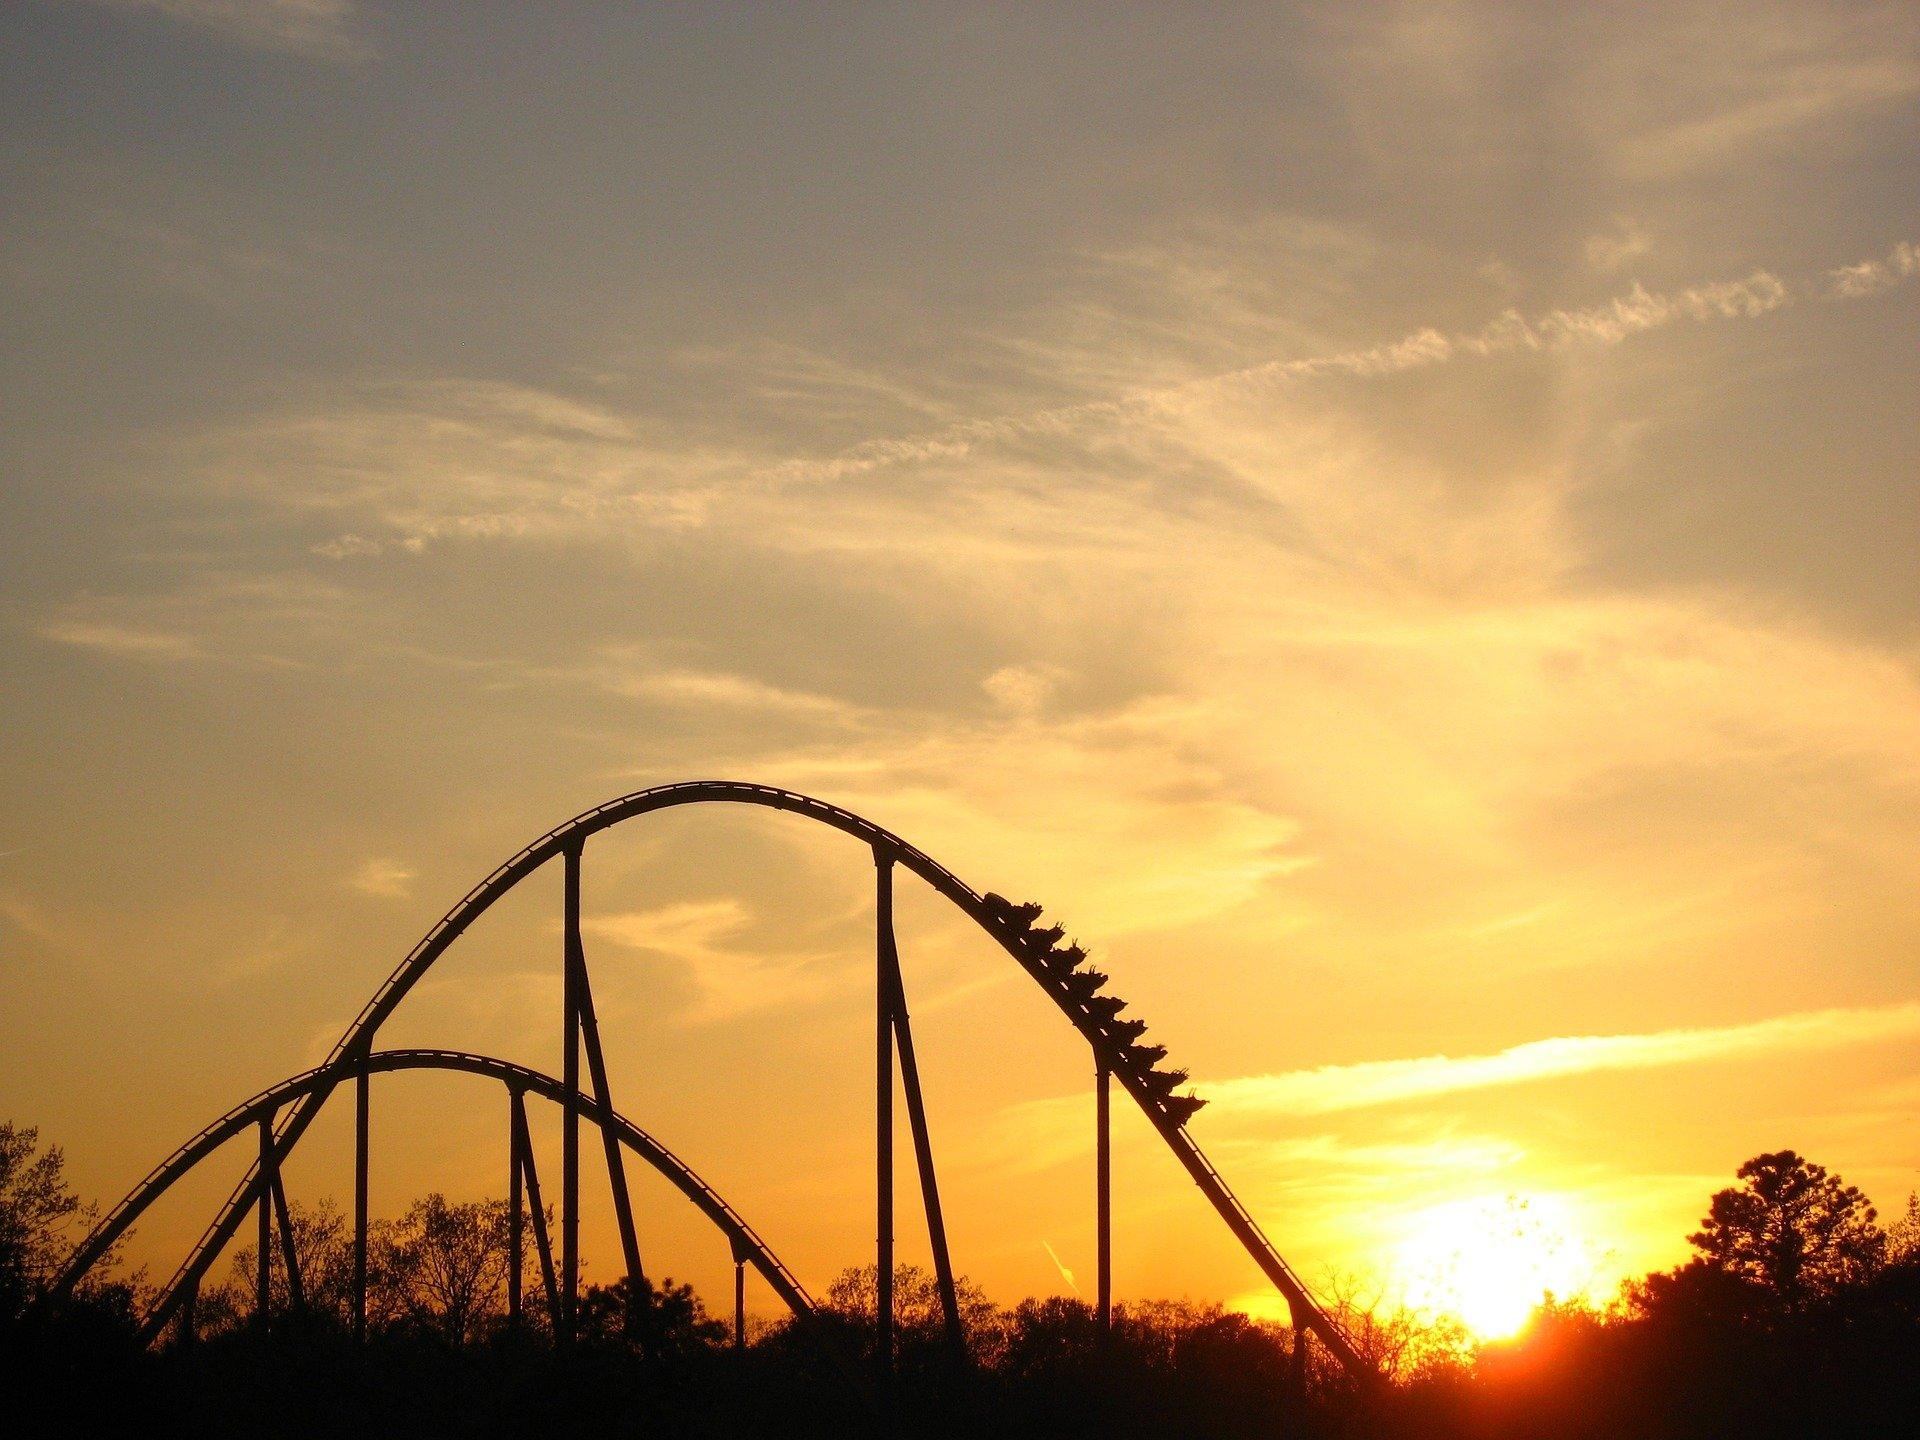 A rollercoaster against the sunset.